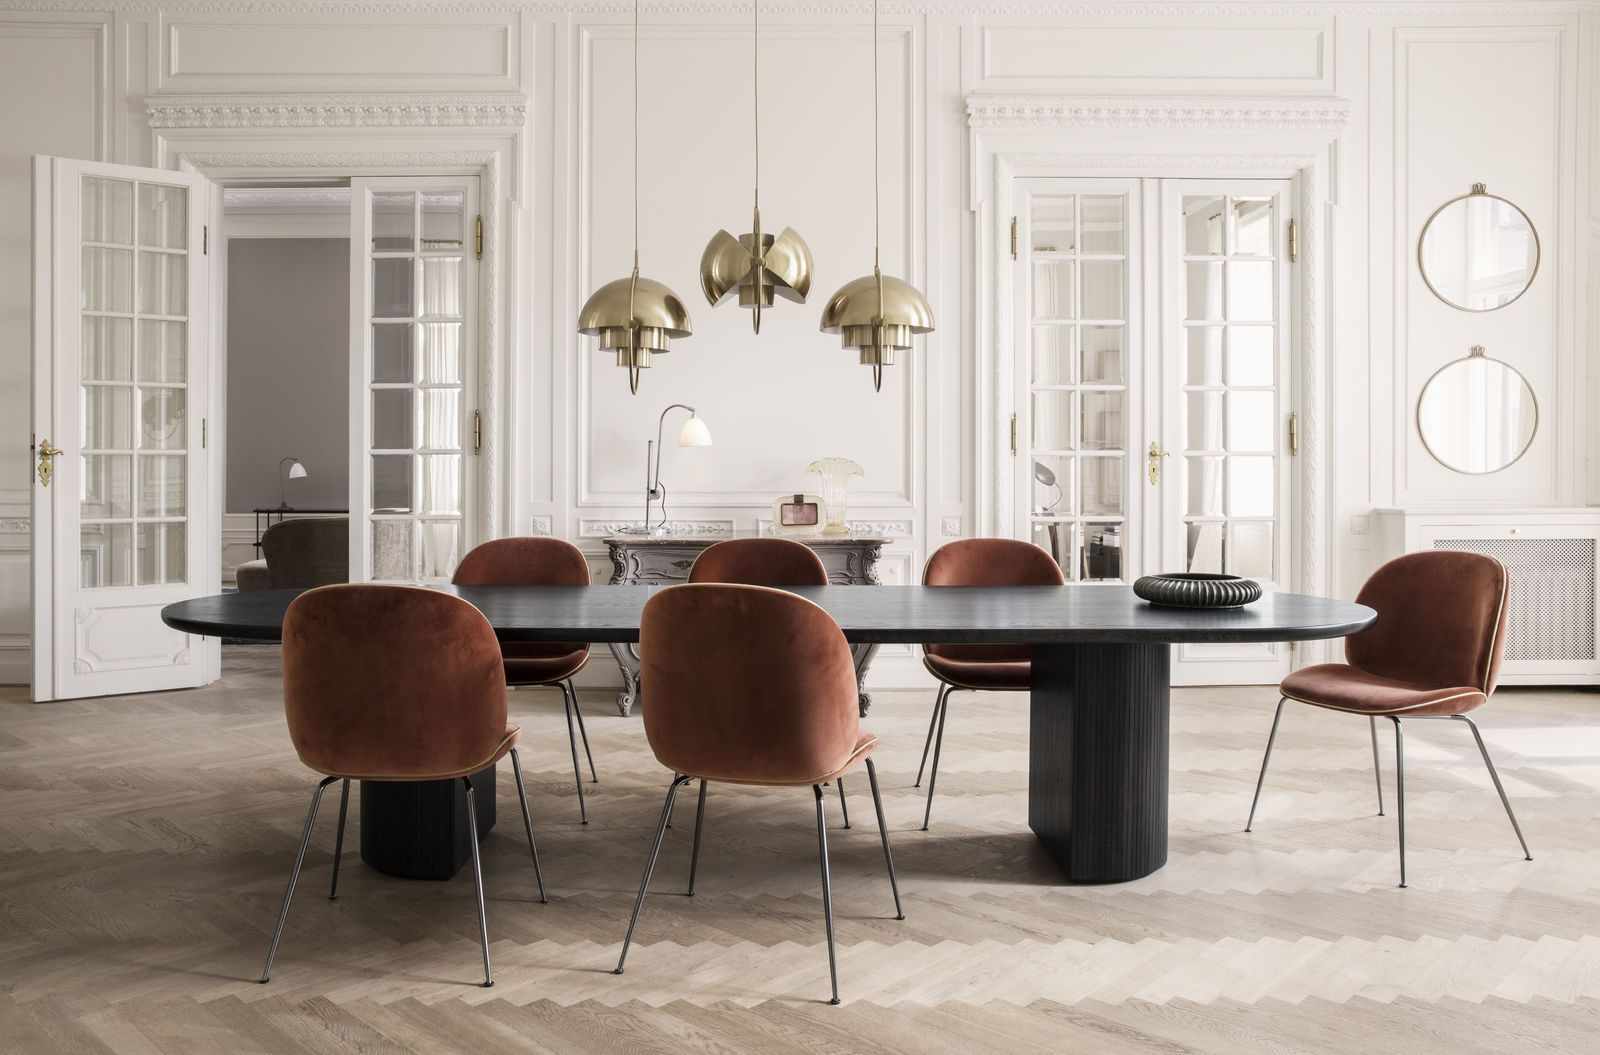 GUBI // Beetle Chair, Moon Dining Table And Mulit Lite Pendant